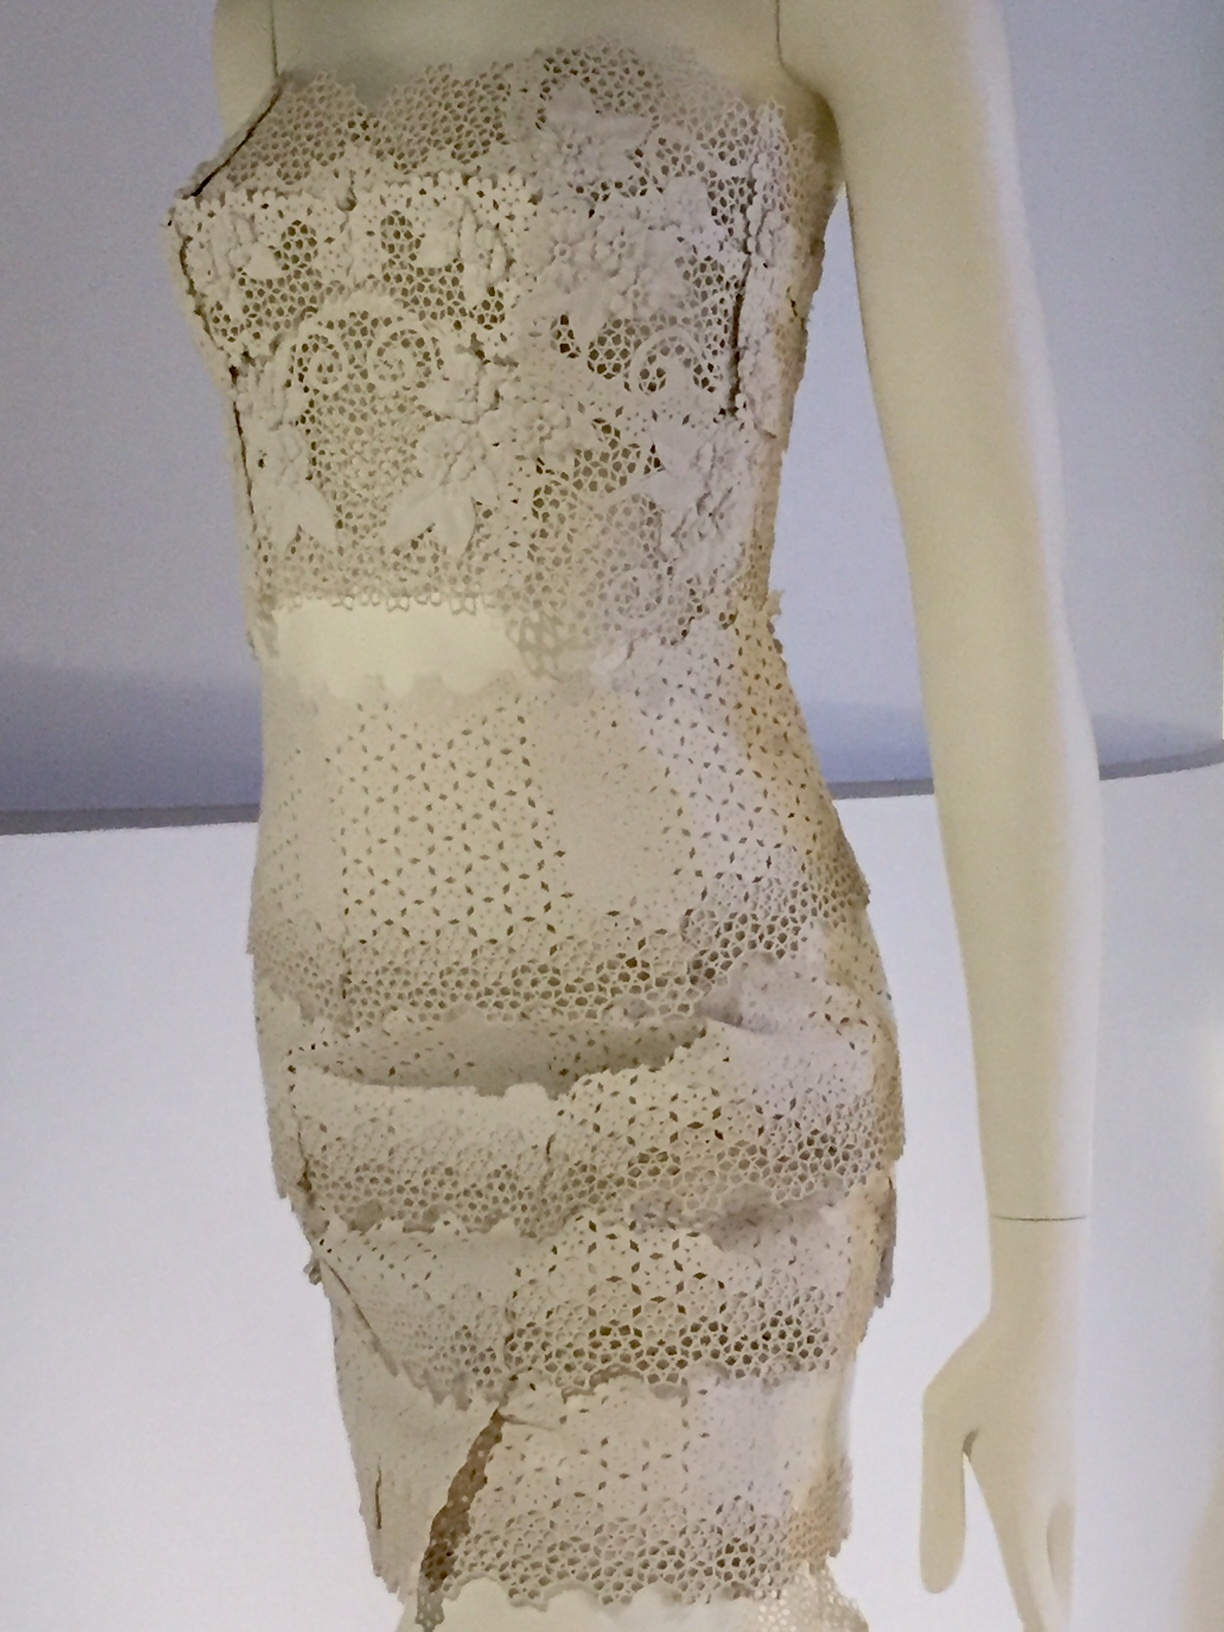 Printing fashion in 3D: the inBloom Dress – Inside the Collection